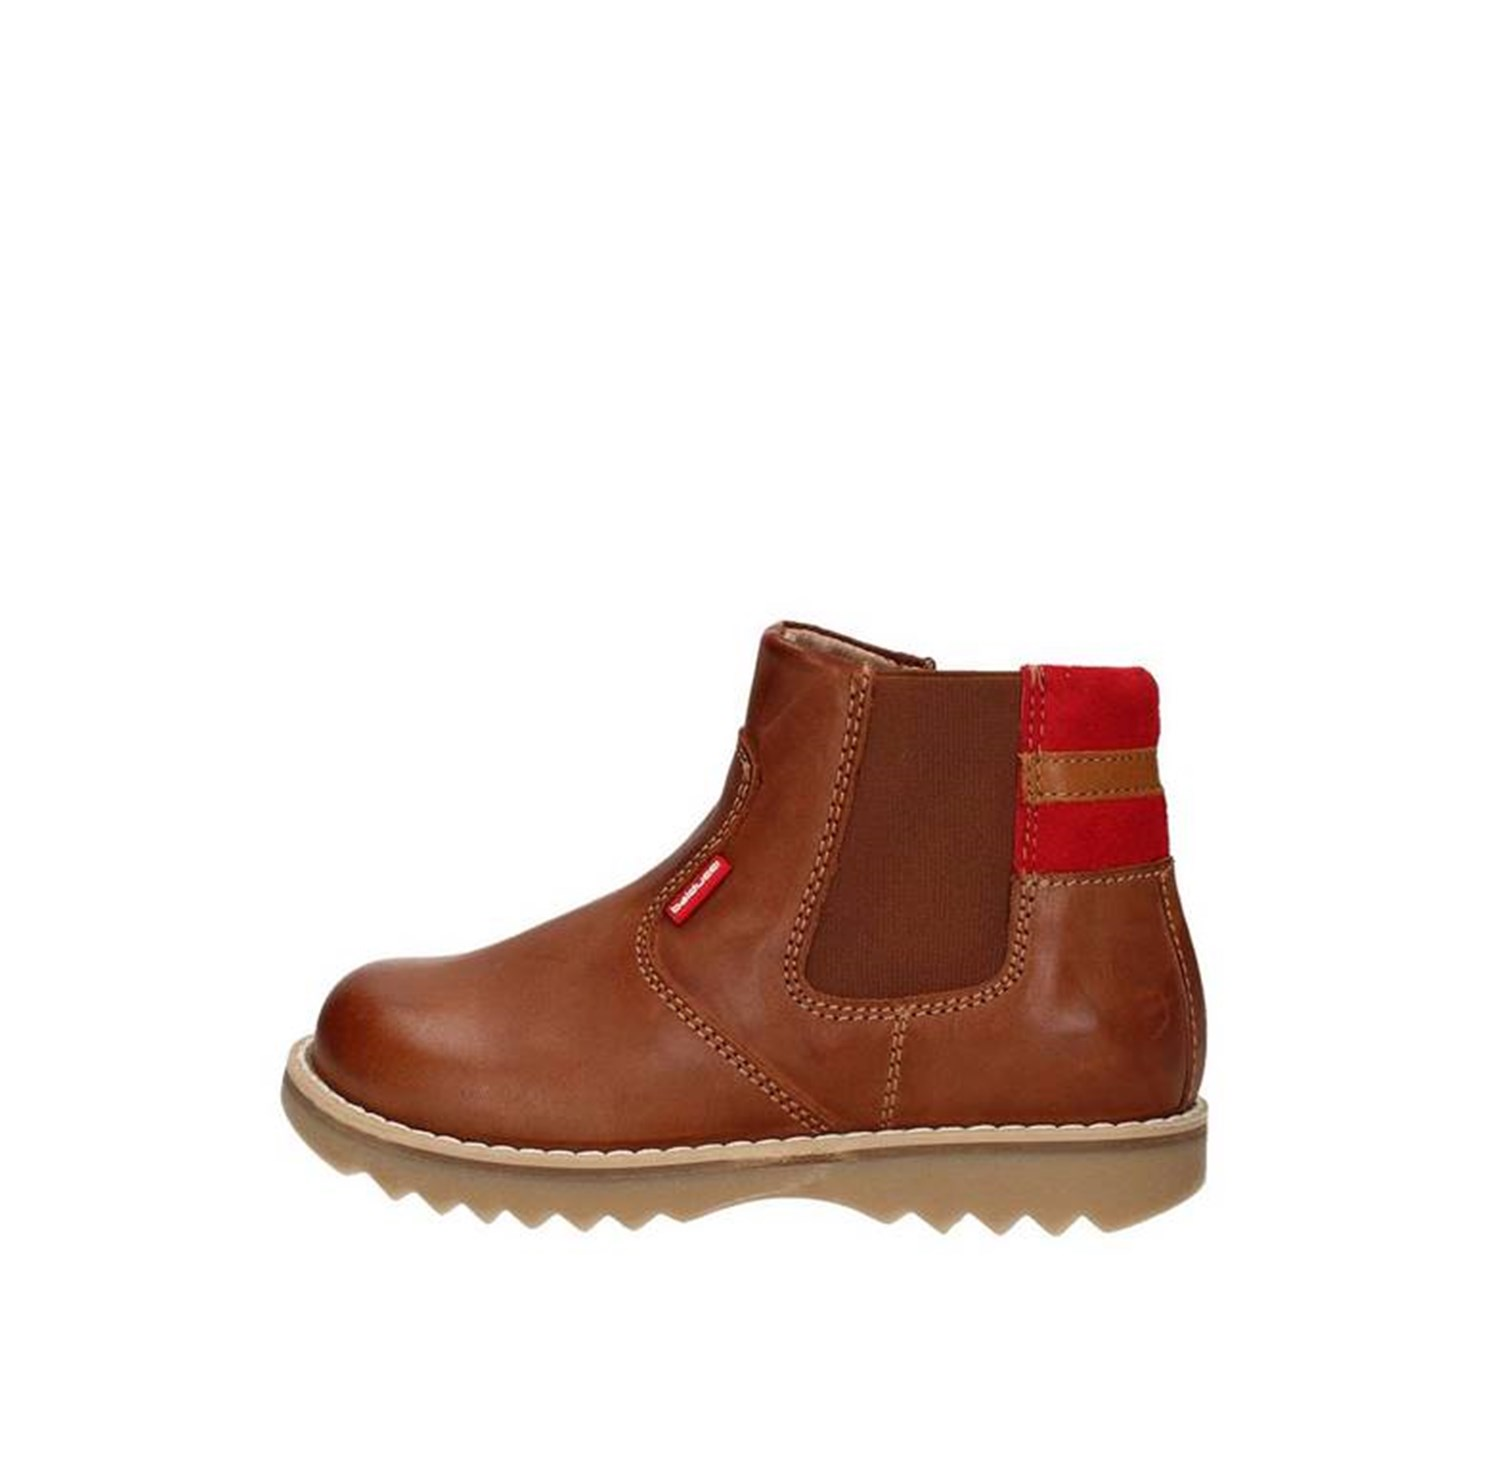 Balducci Shoes Child boots BROWN CITA054